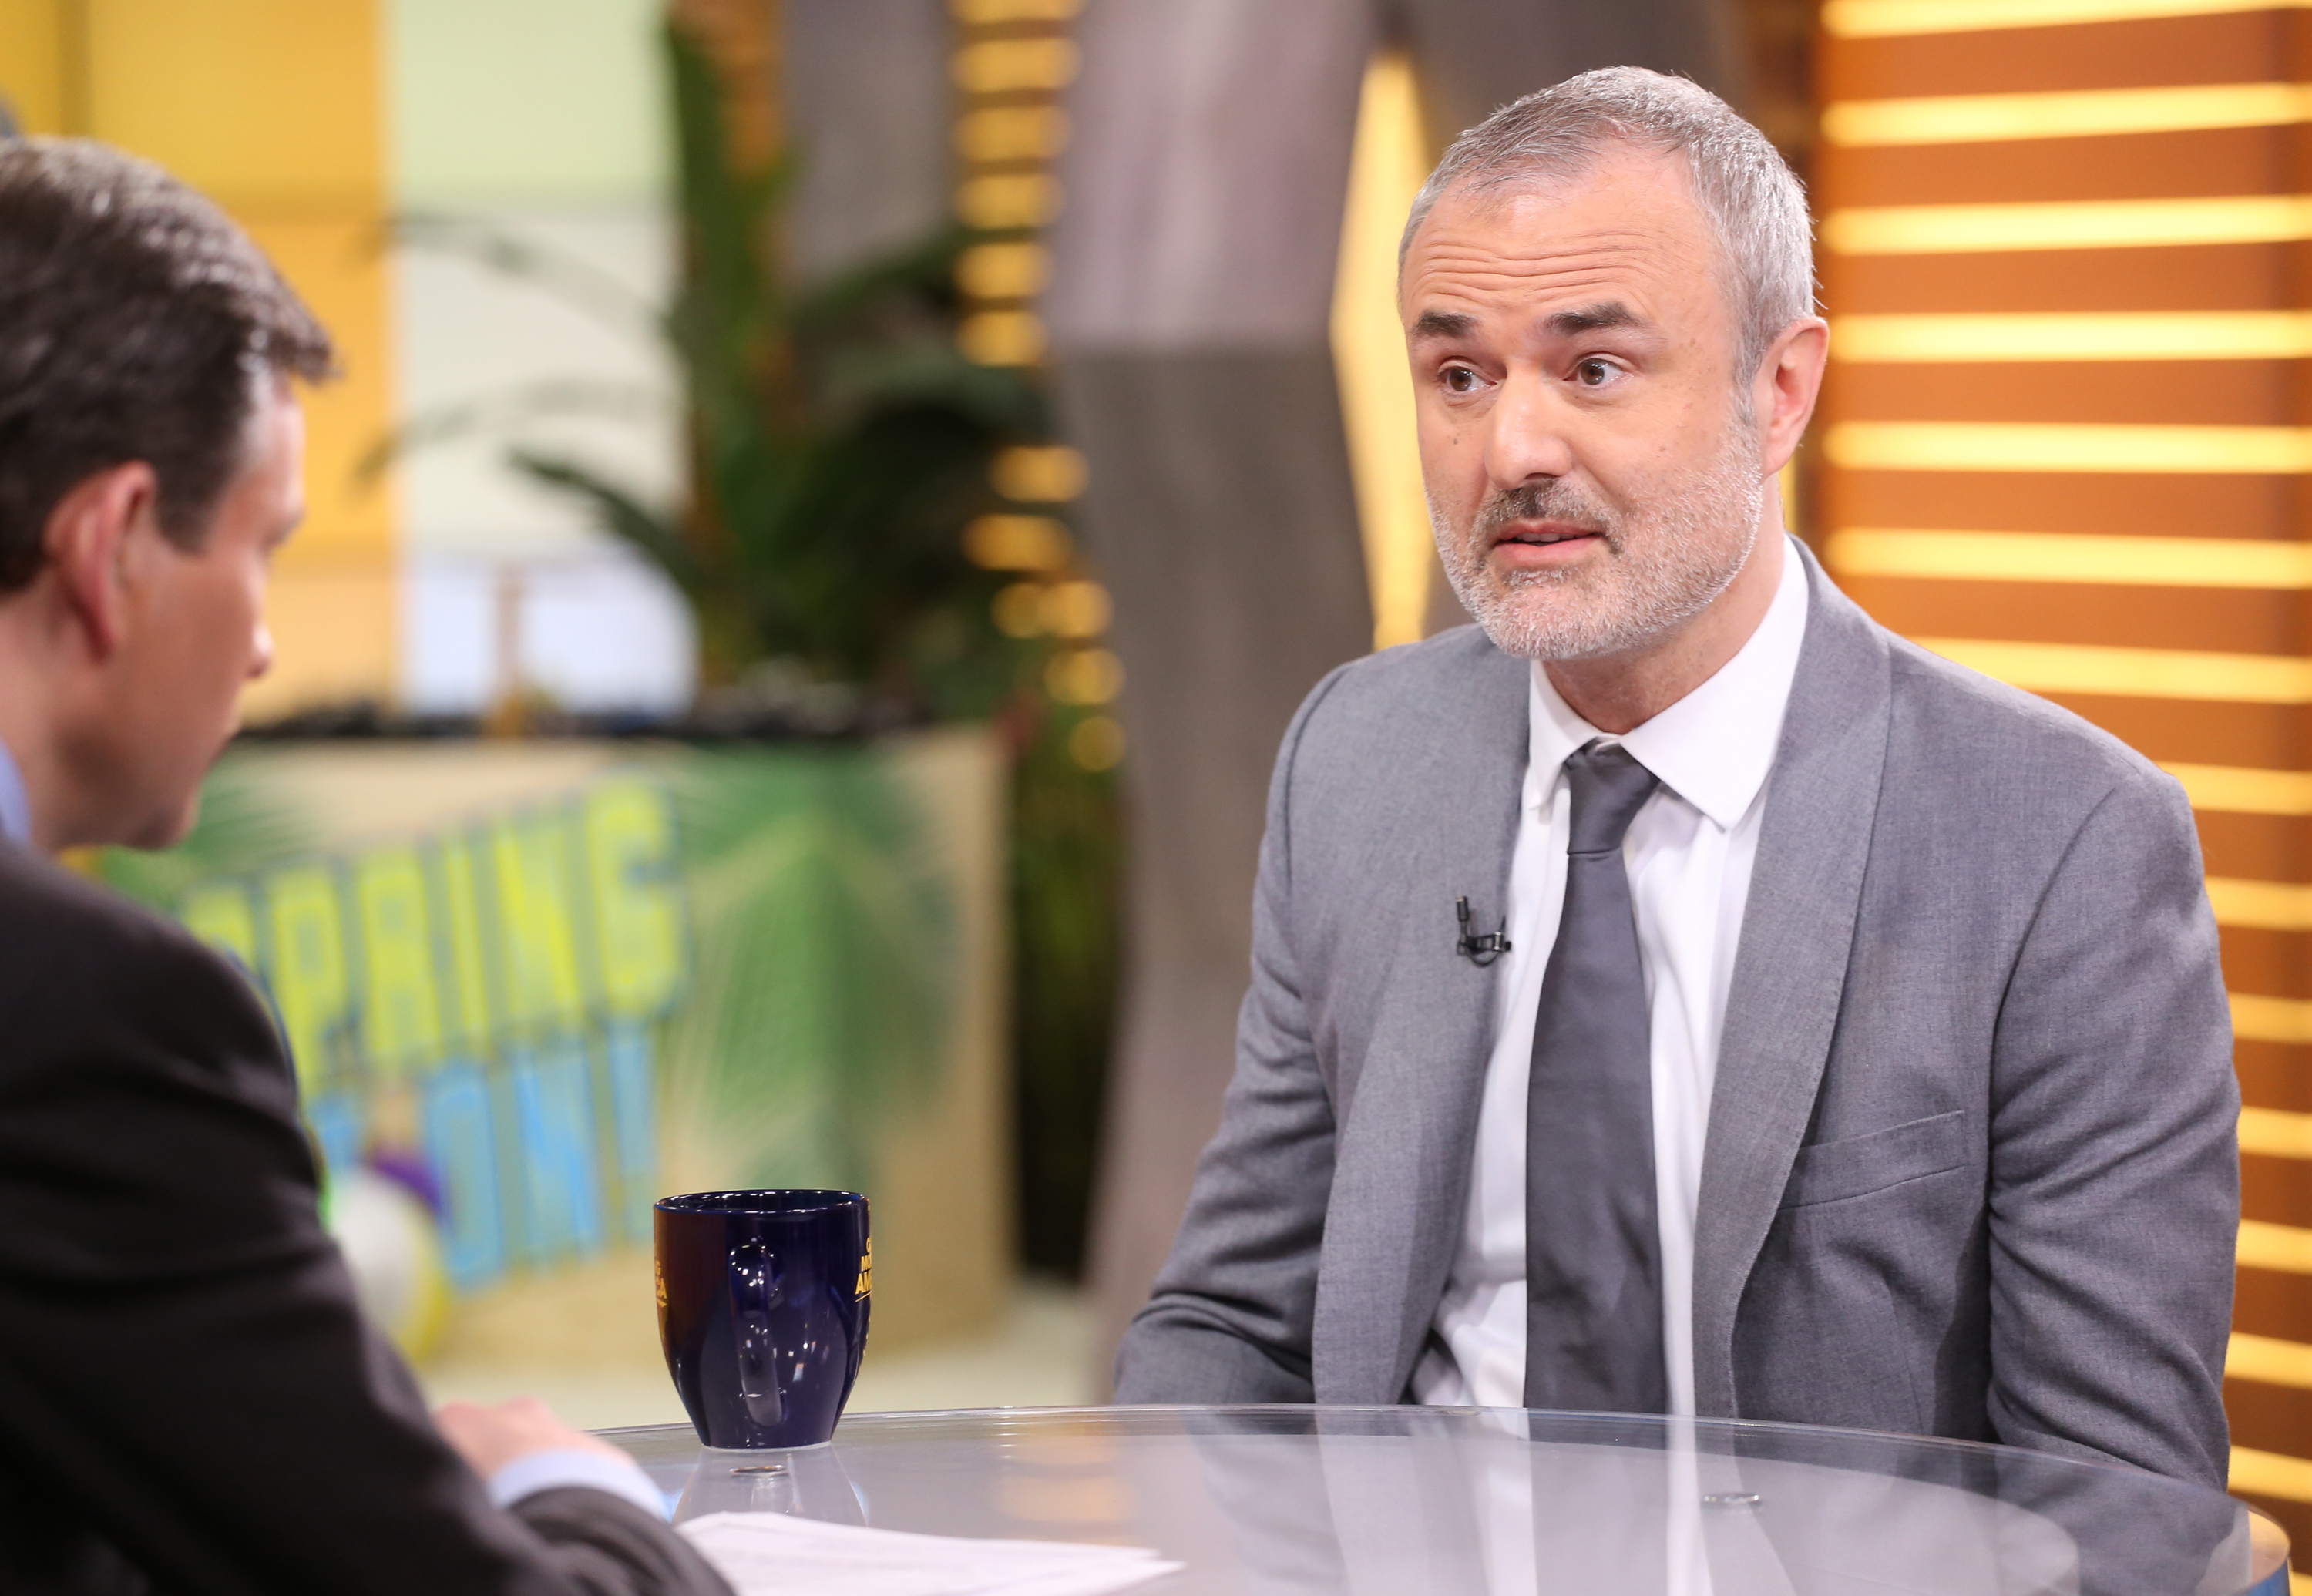 Nick Denton of Gawker is a guest on  Good Morning America  on March 24, 2016.